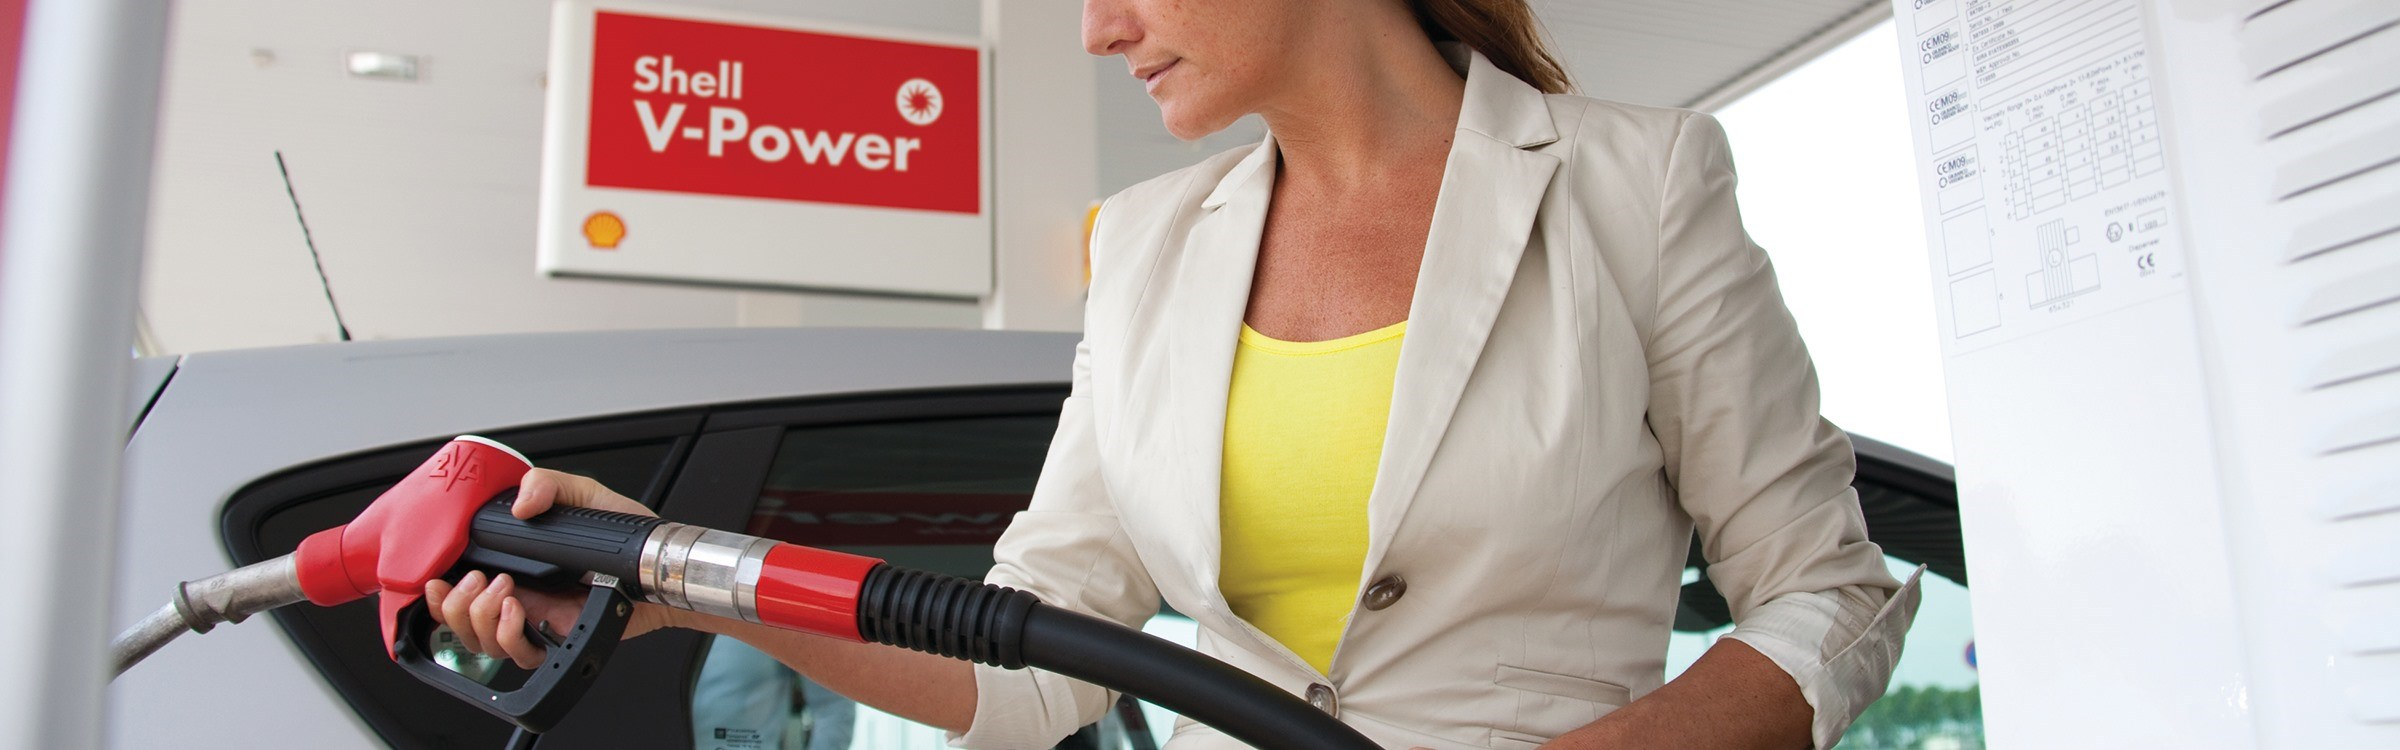 ¡Consigue el doble de puntos con Shell V-Power!